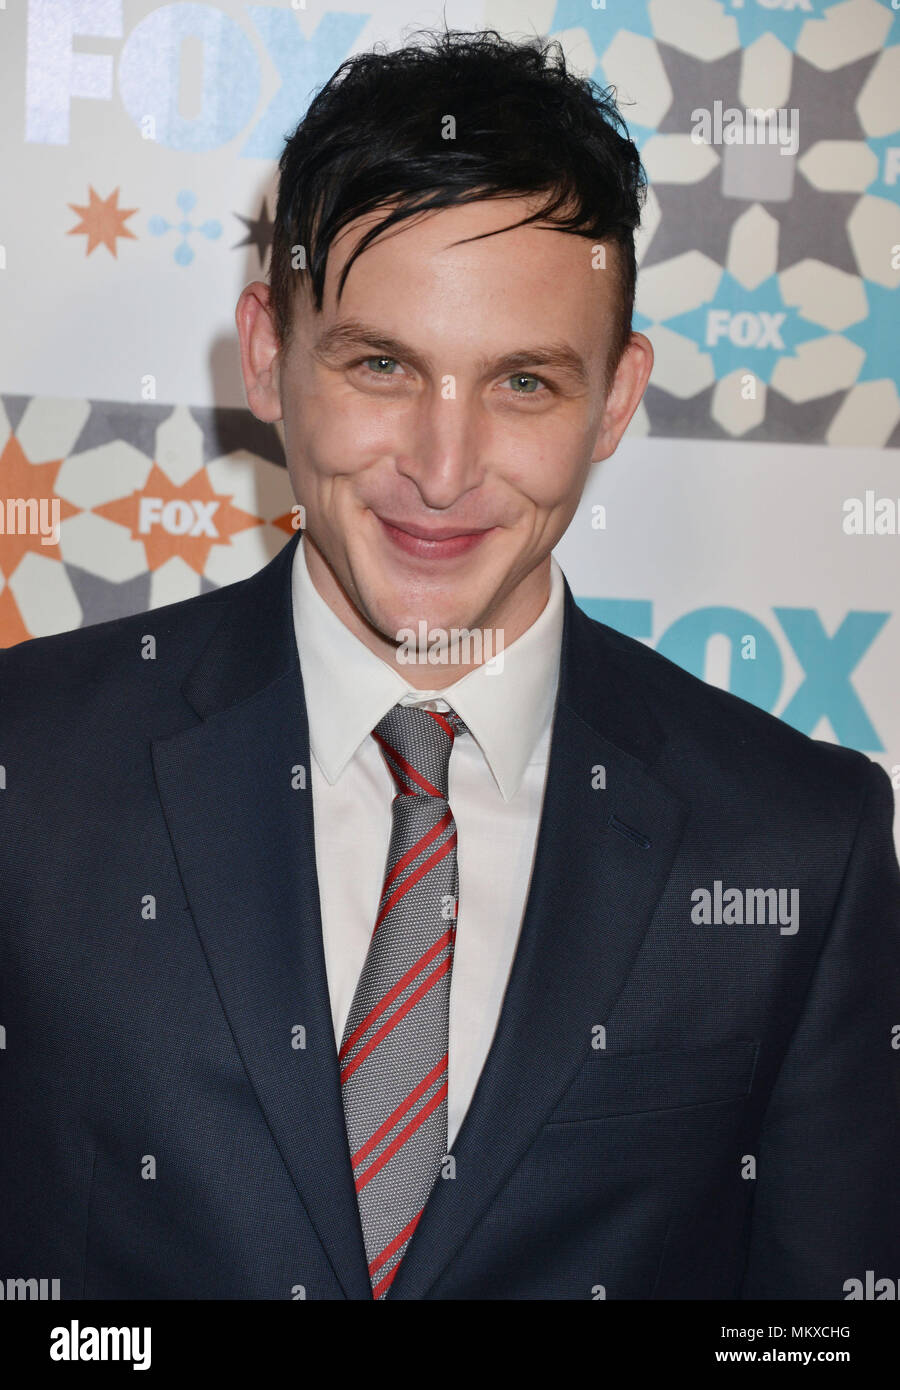 7ef6052ac951 Robin Lord Taylor 346 at the All Star party Fox Talent tca 2014 At the So